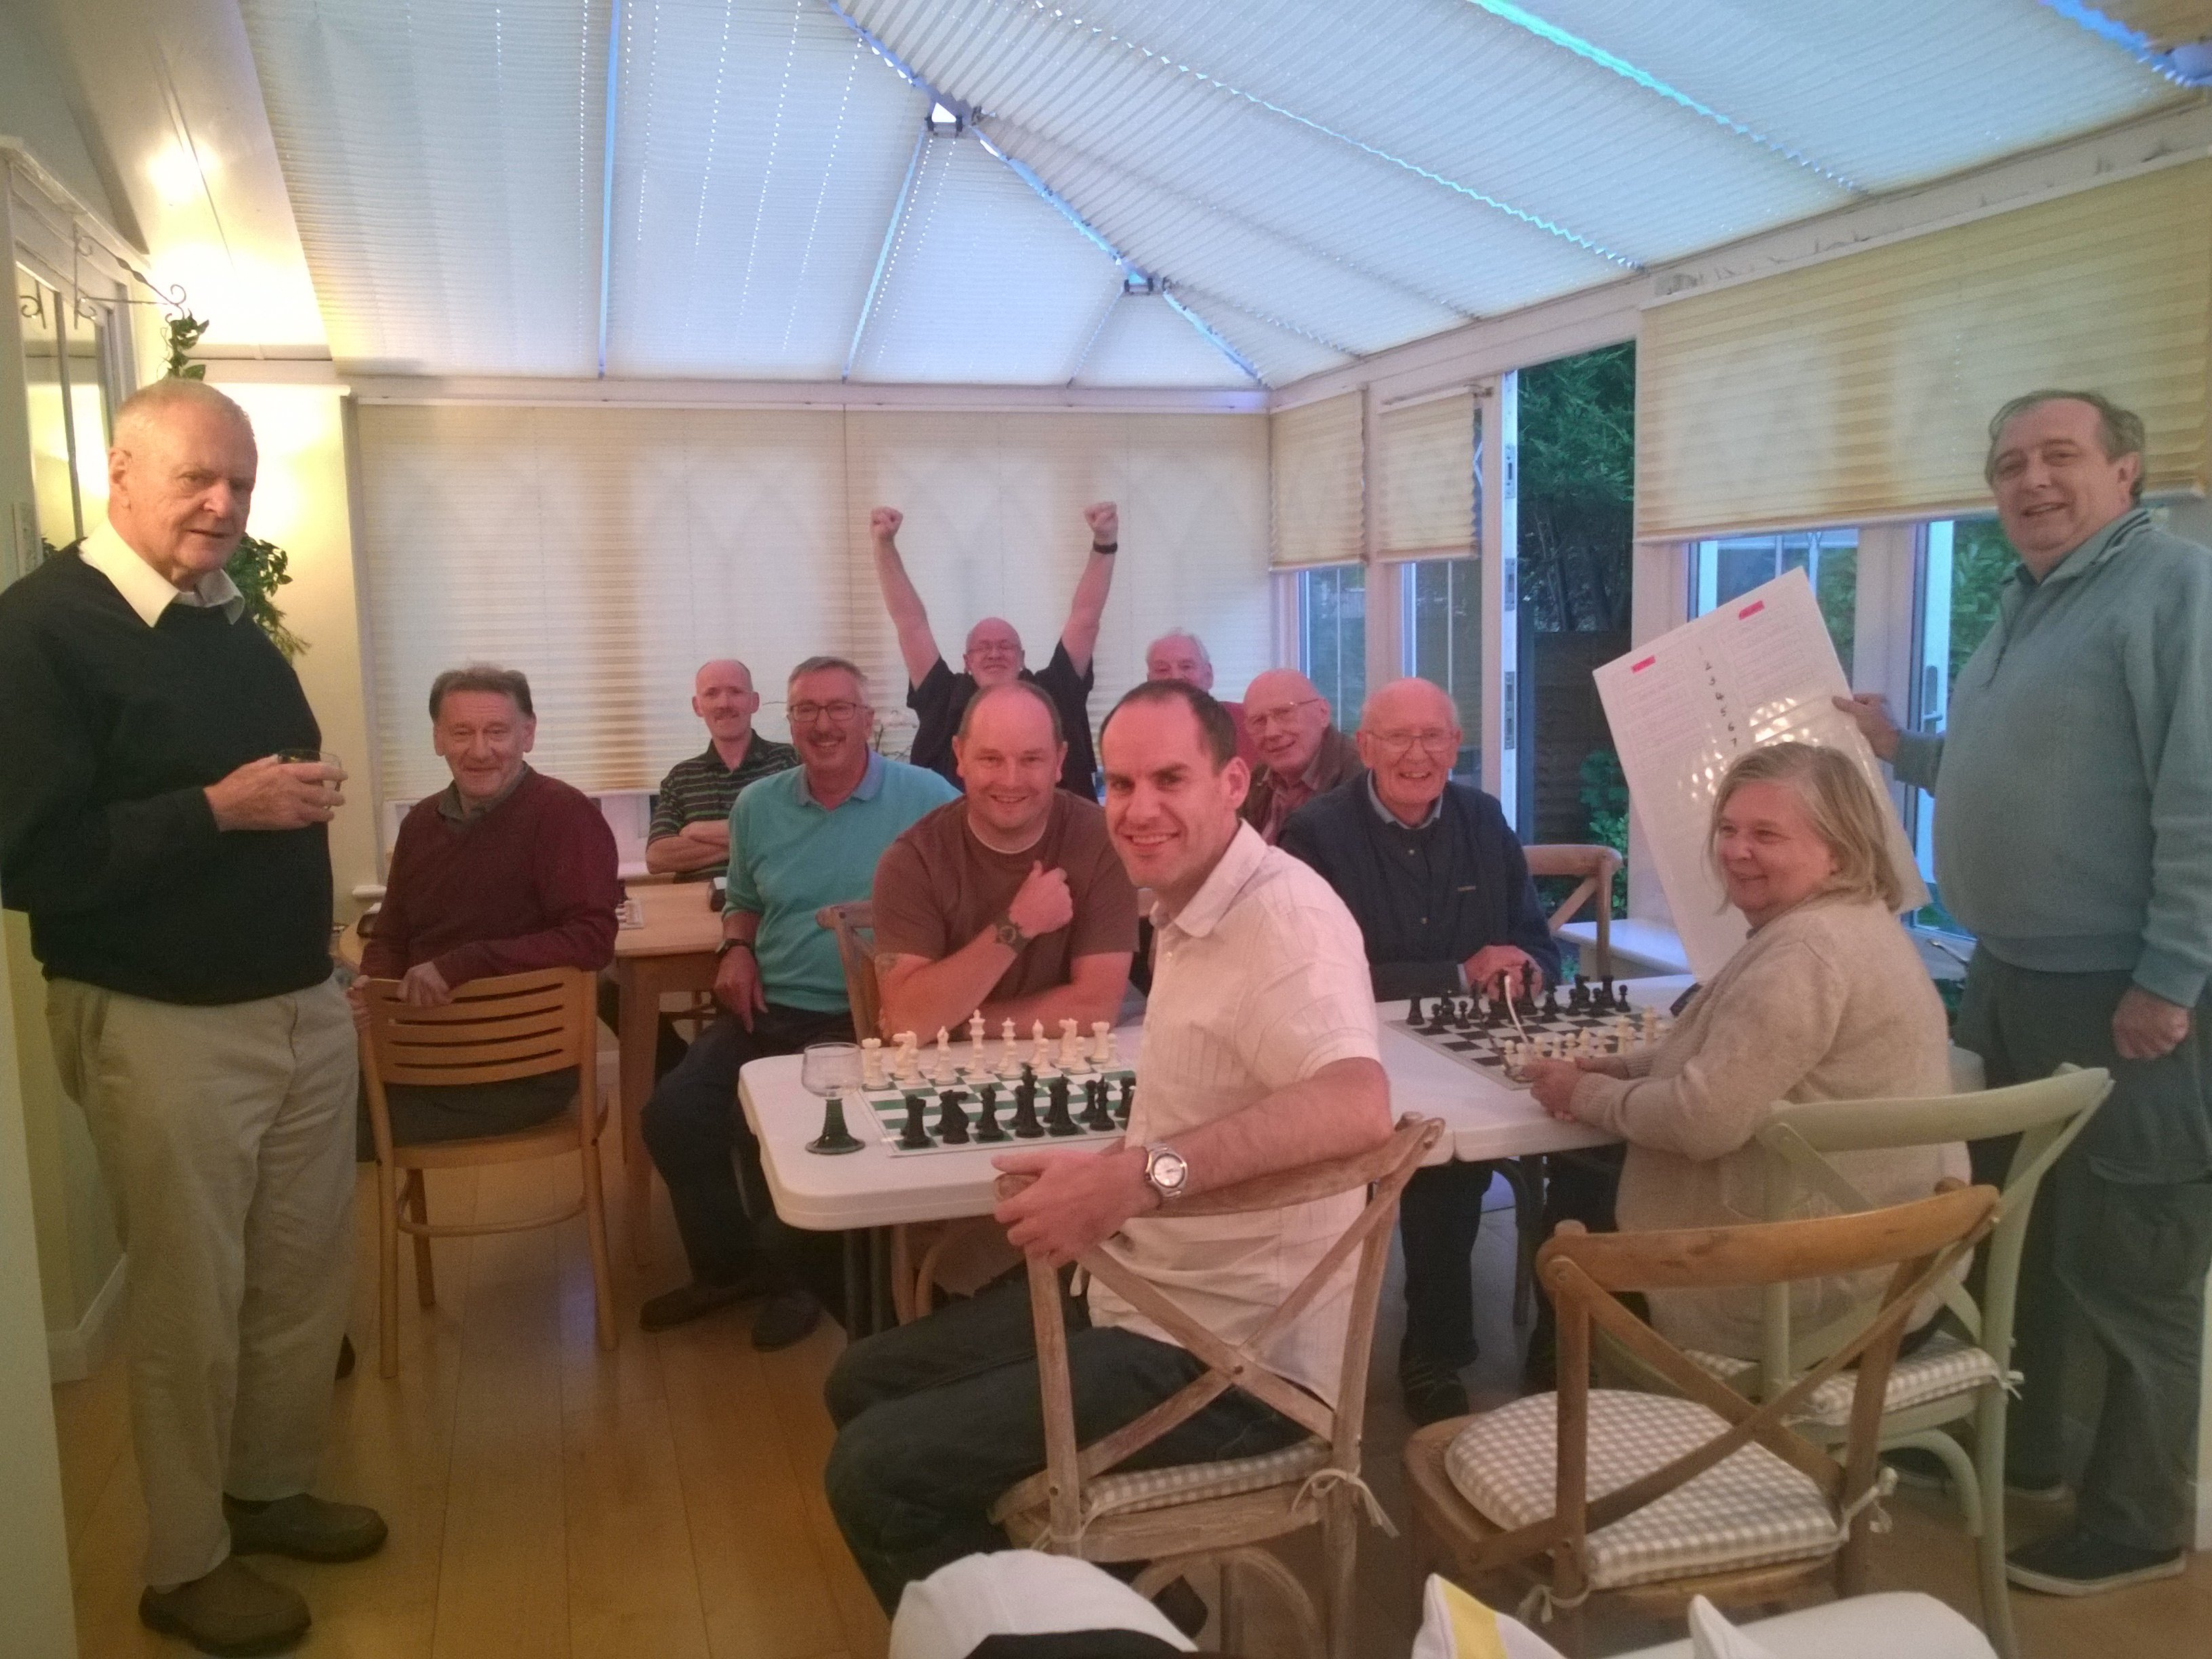 Chess club pictures 02